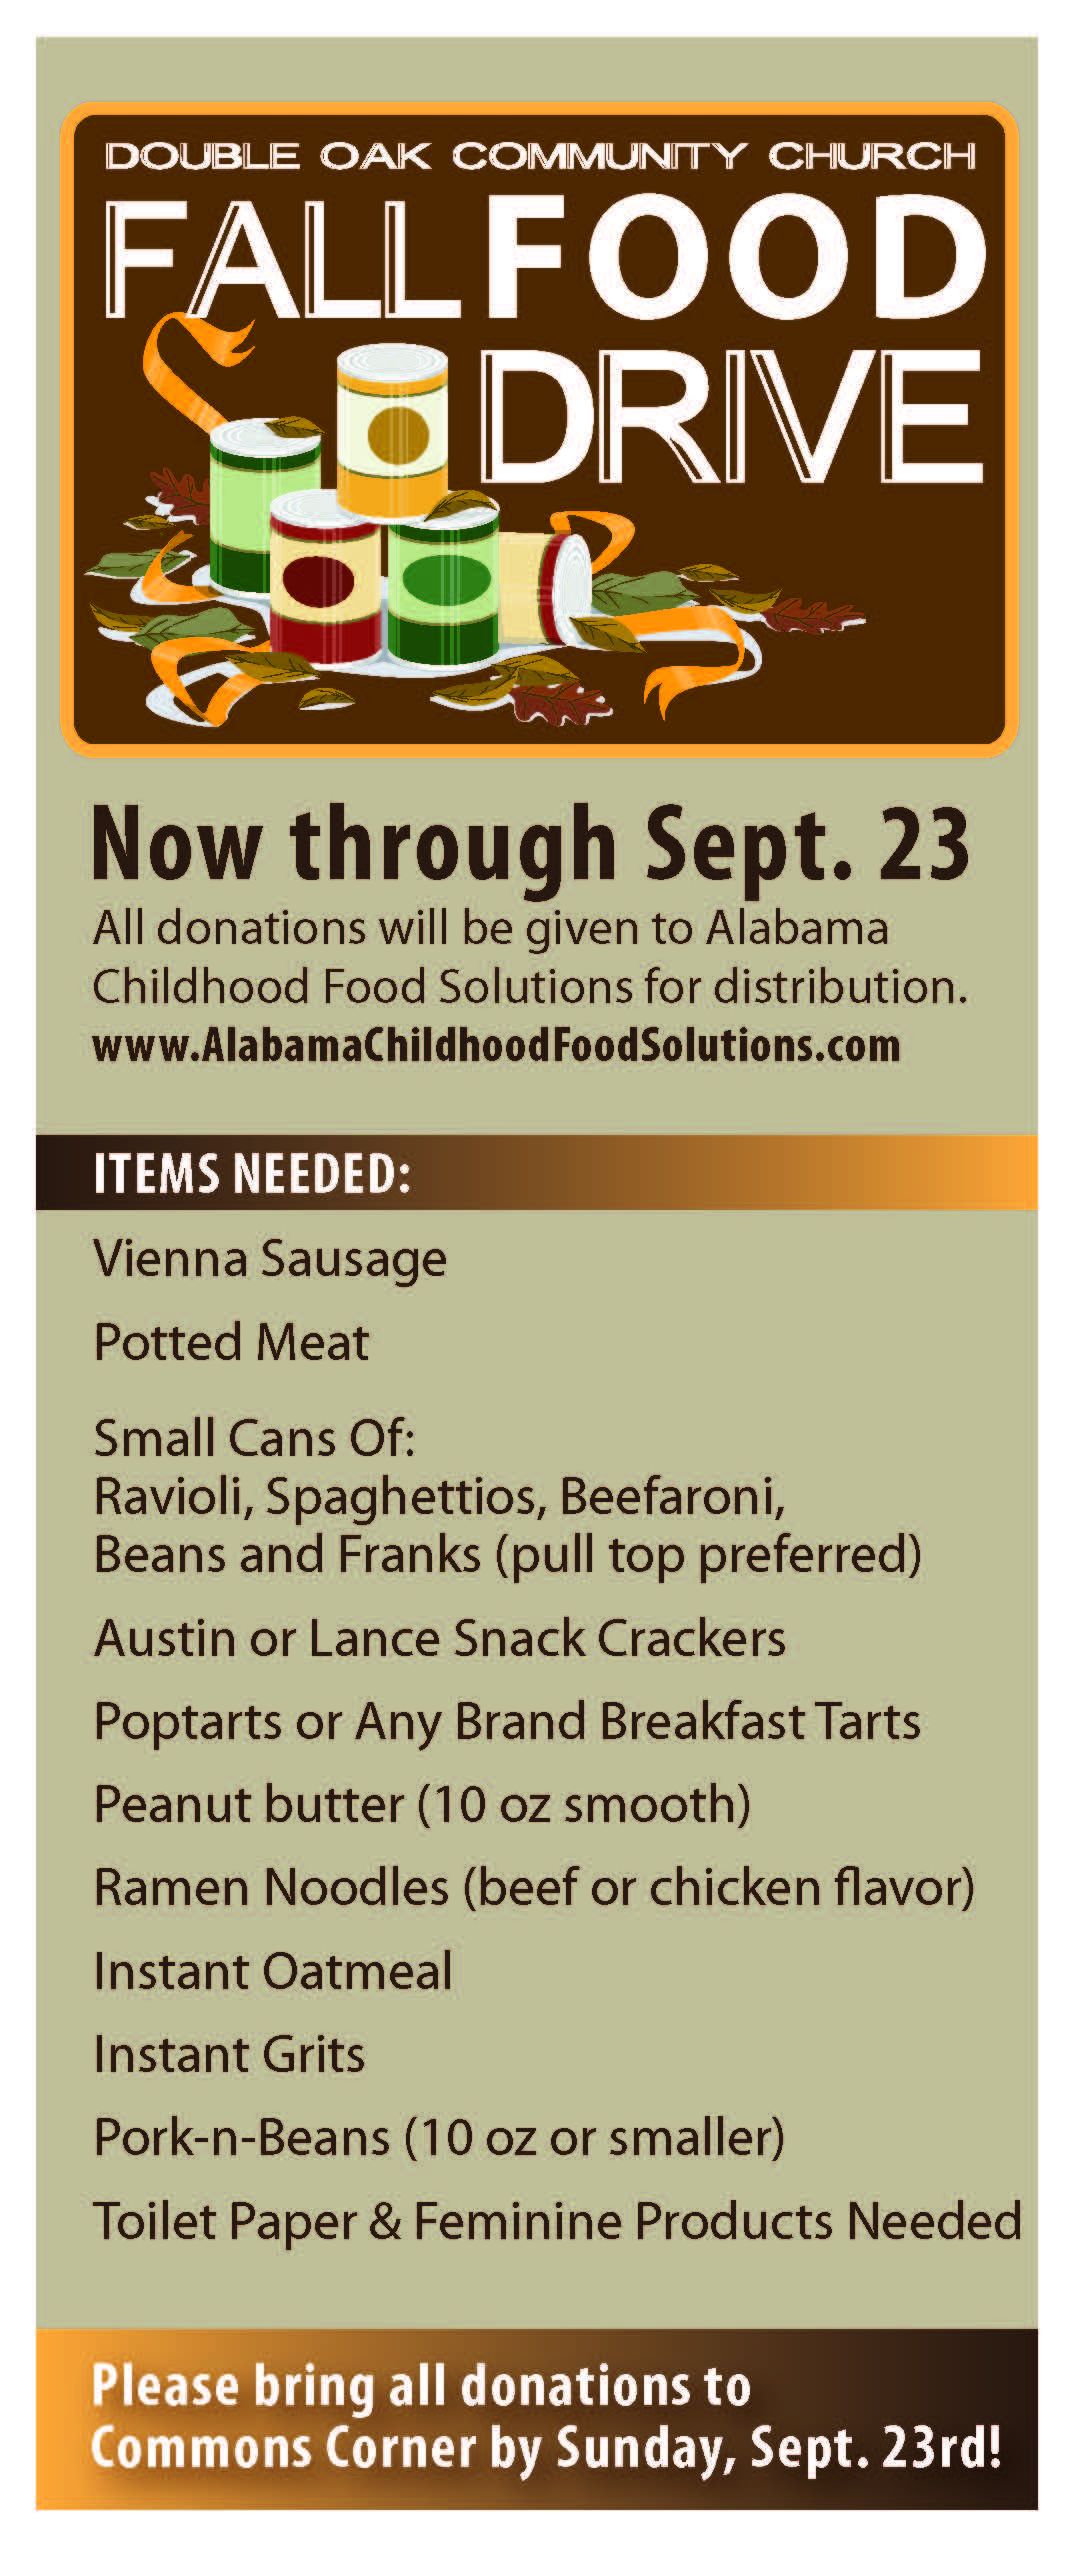 FallFoodDrive.sheet.1.jpg